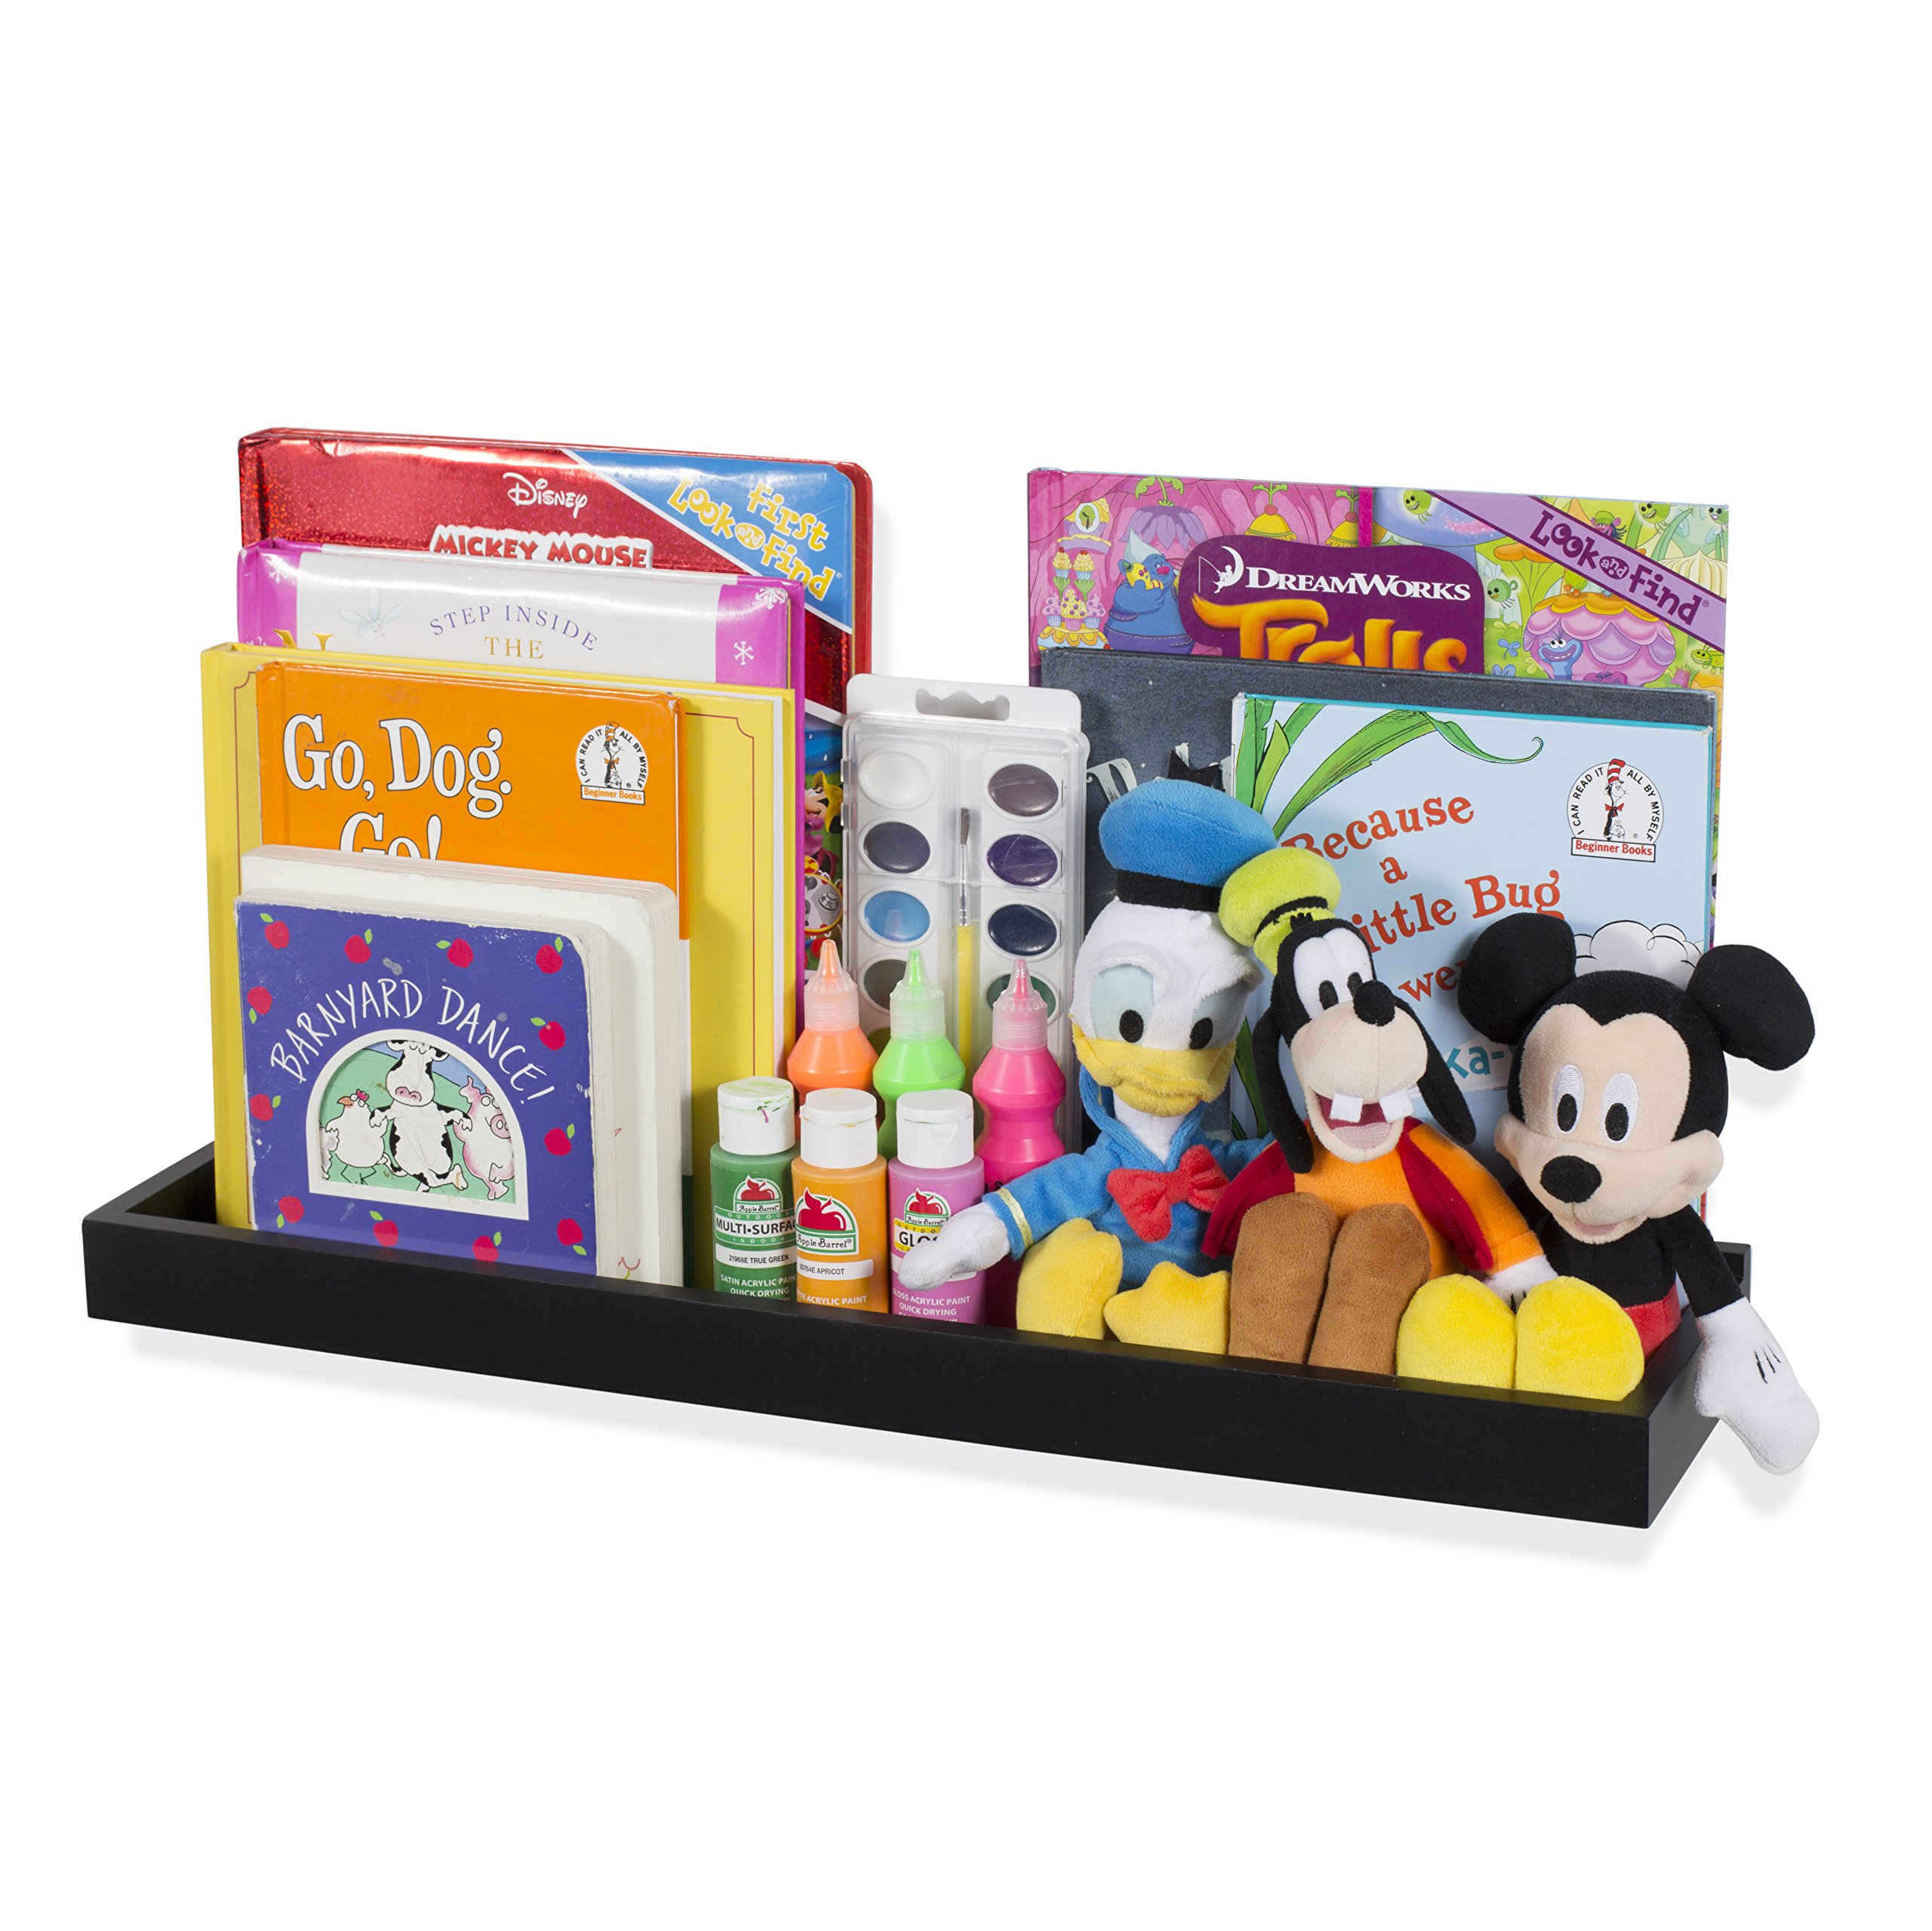 Wallniture Philly Nursery Baby Bookshelf Tray - Picture Ledge - Wall Mount Floating Book Shelves for Kids Room - Organizer Storage Display 23.75 Inch (Black)